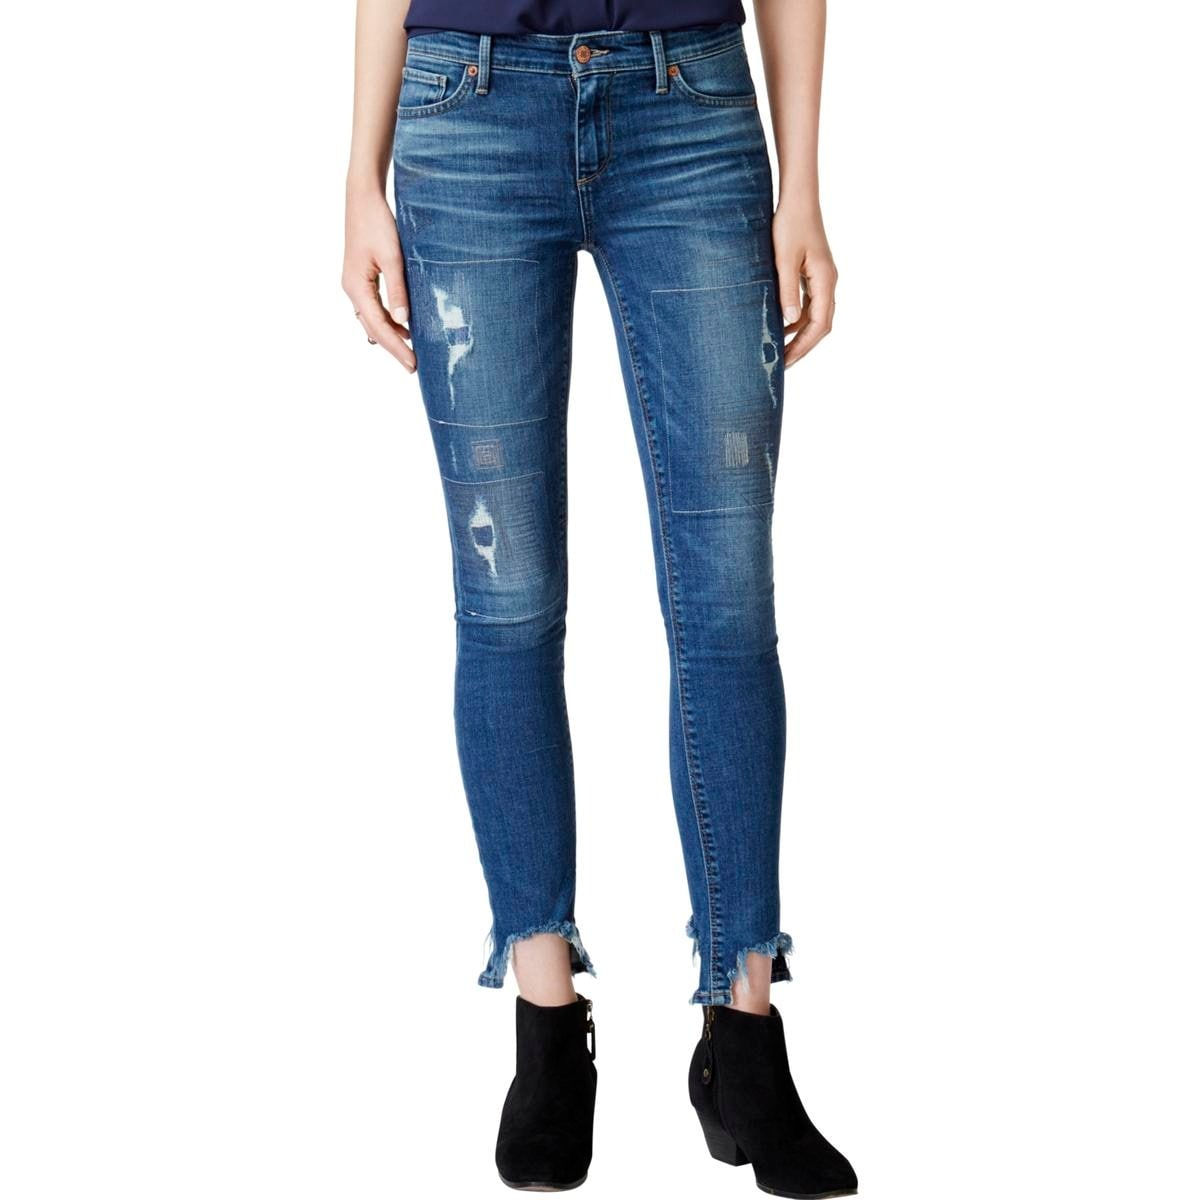 7f4c27e96be1b Shop Lucky Brand Womens Ava Skinny Jeans Ankle Ripped - Free ...